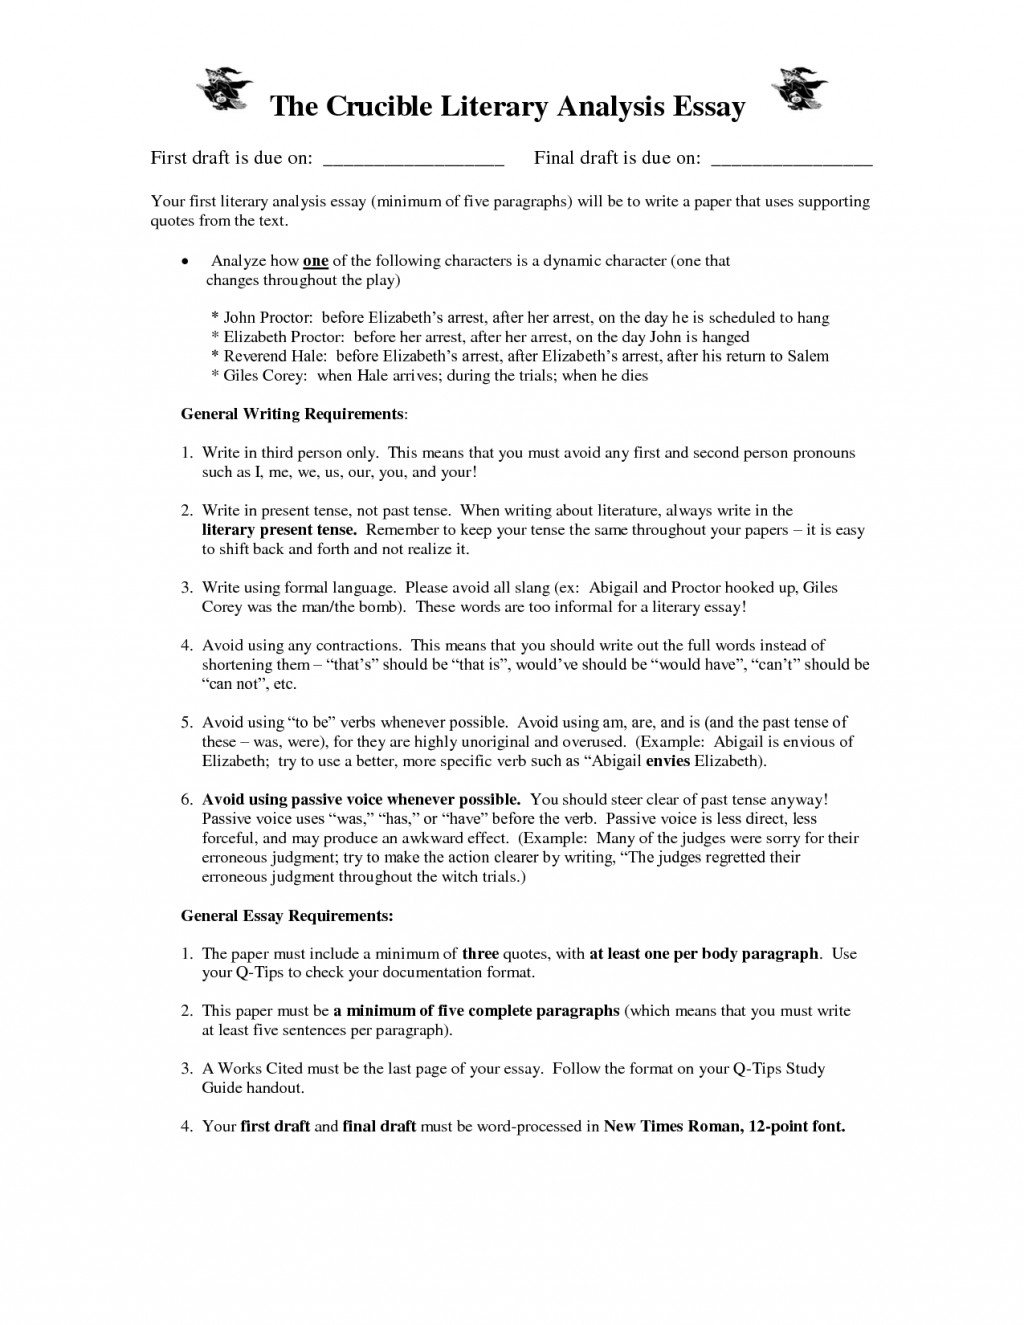 007 Essay Example The Crucible And Mccarthyism Incredible What Are Parallels Background Questions Large